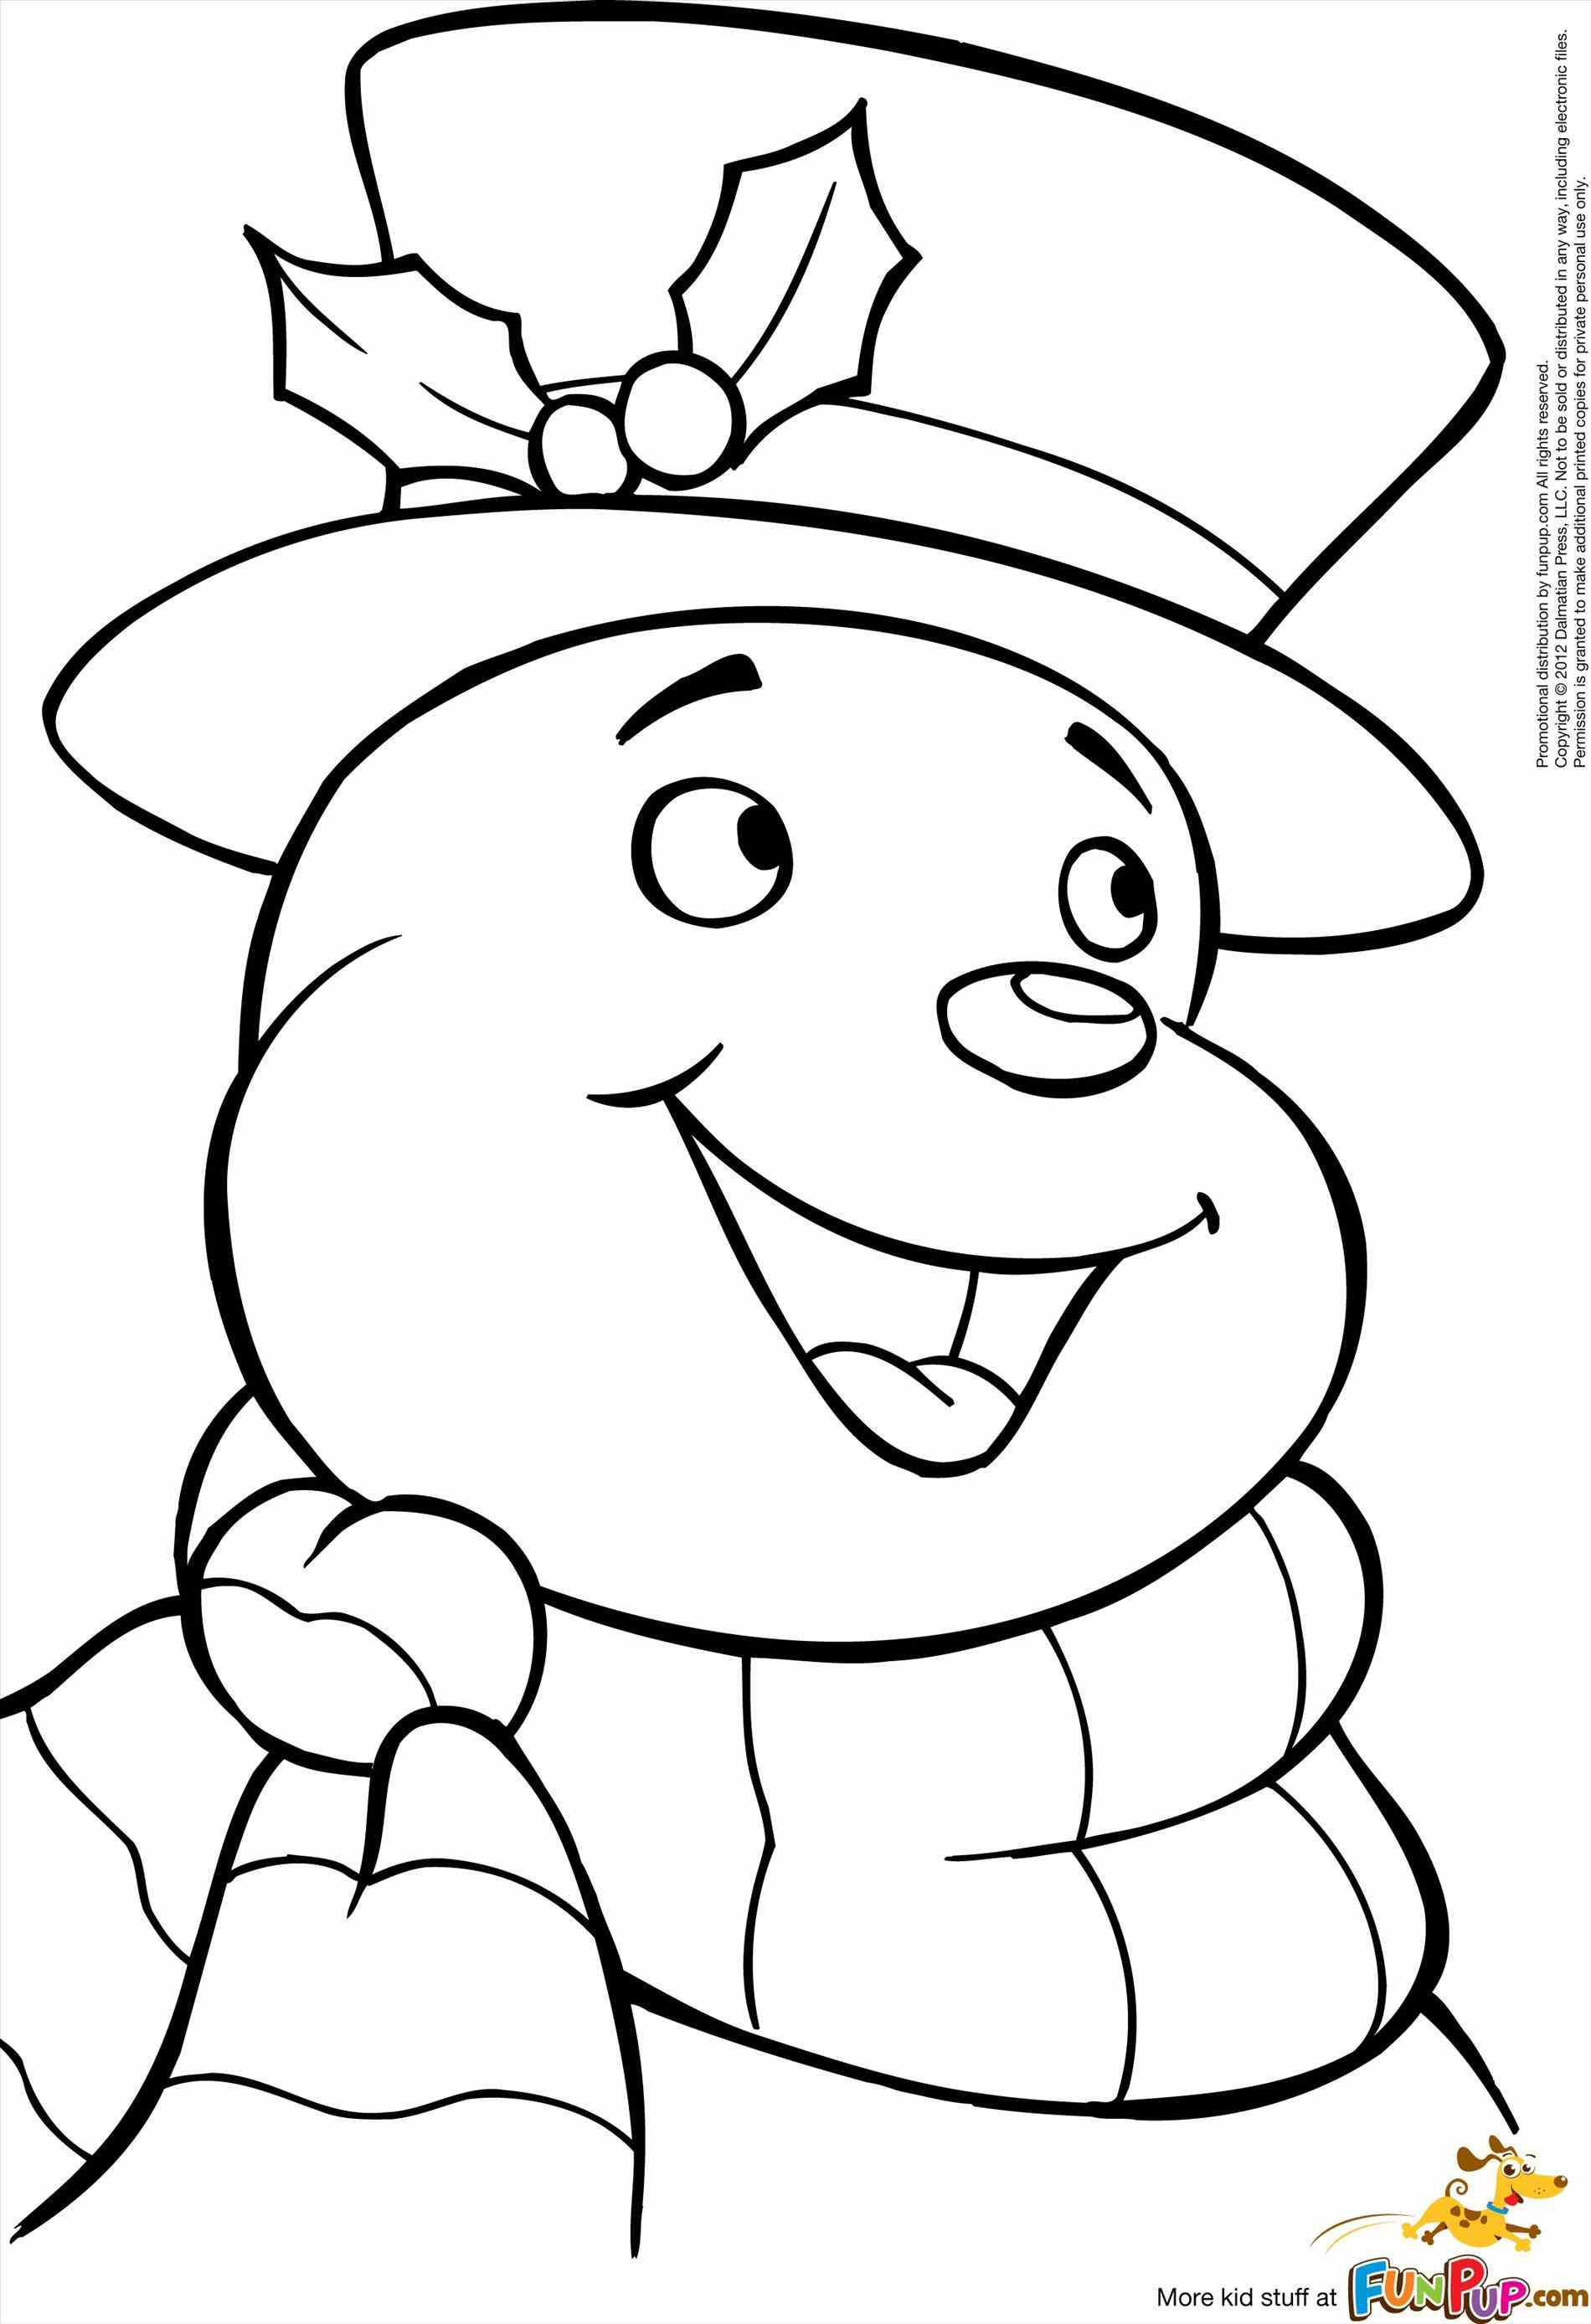 Snowman Coloring Pages | Free download on ClipArtMag